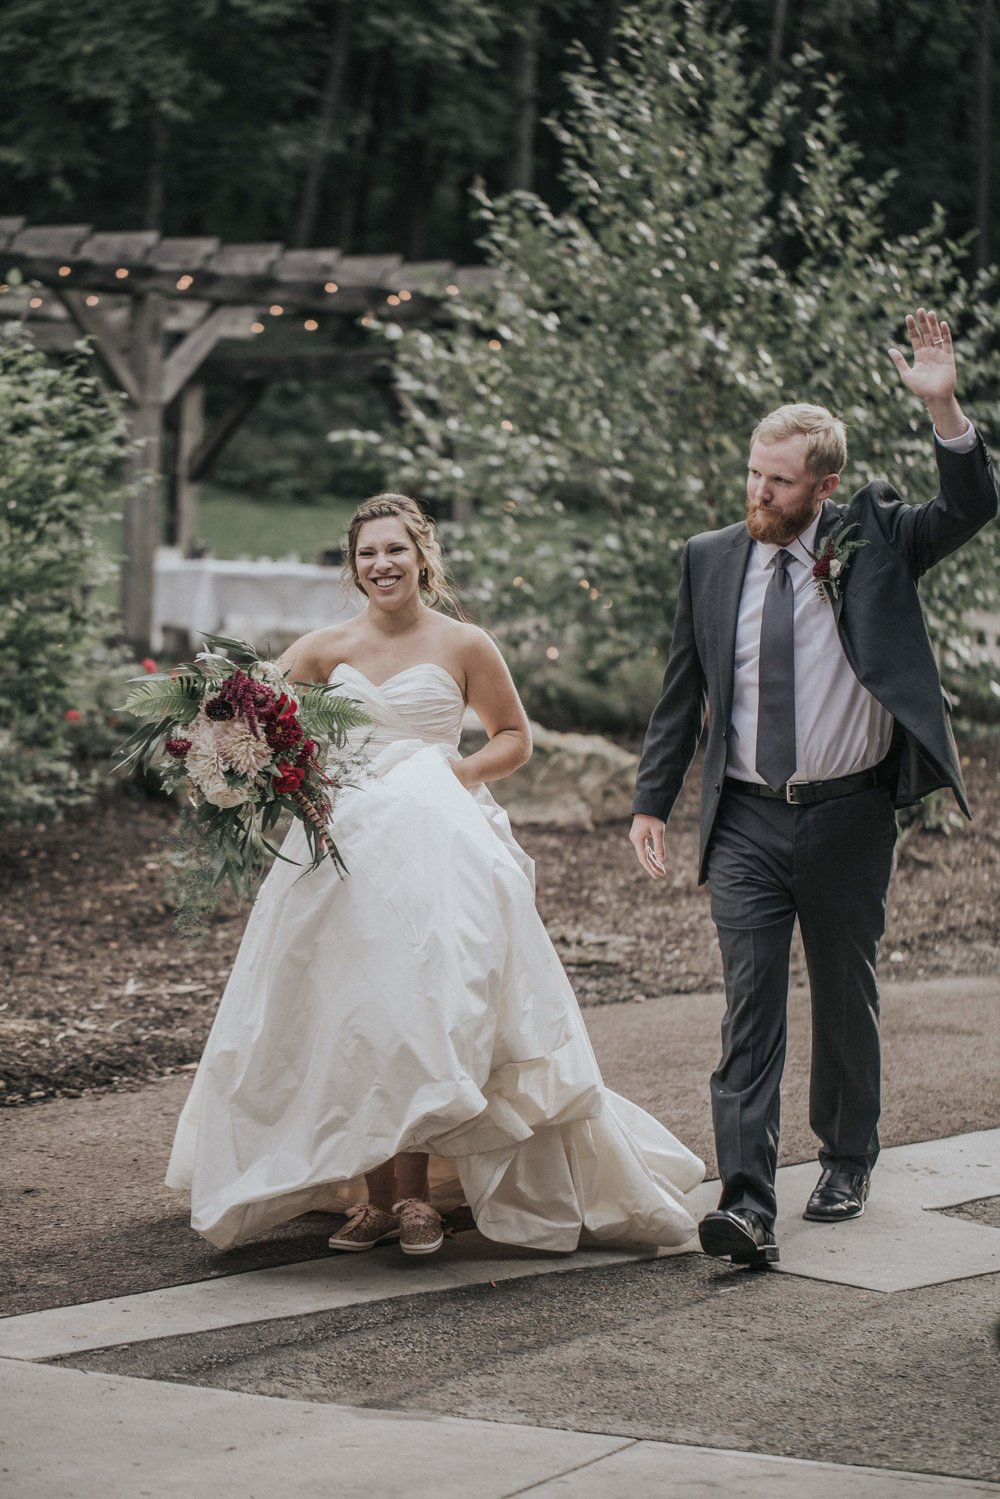 Bride and groom celebrate after wedding ceremony for rustic wedding in Farmington, PA planned by Exhale Events. Find more wedding inspiration at exhale-events.com!